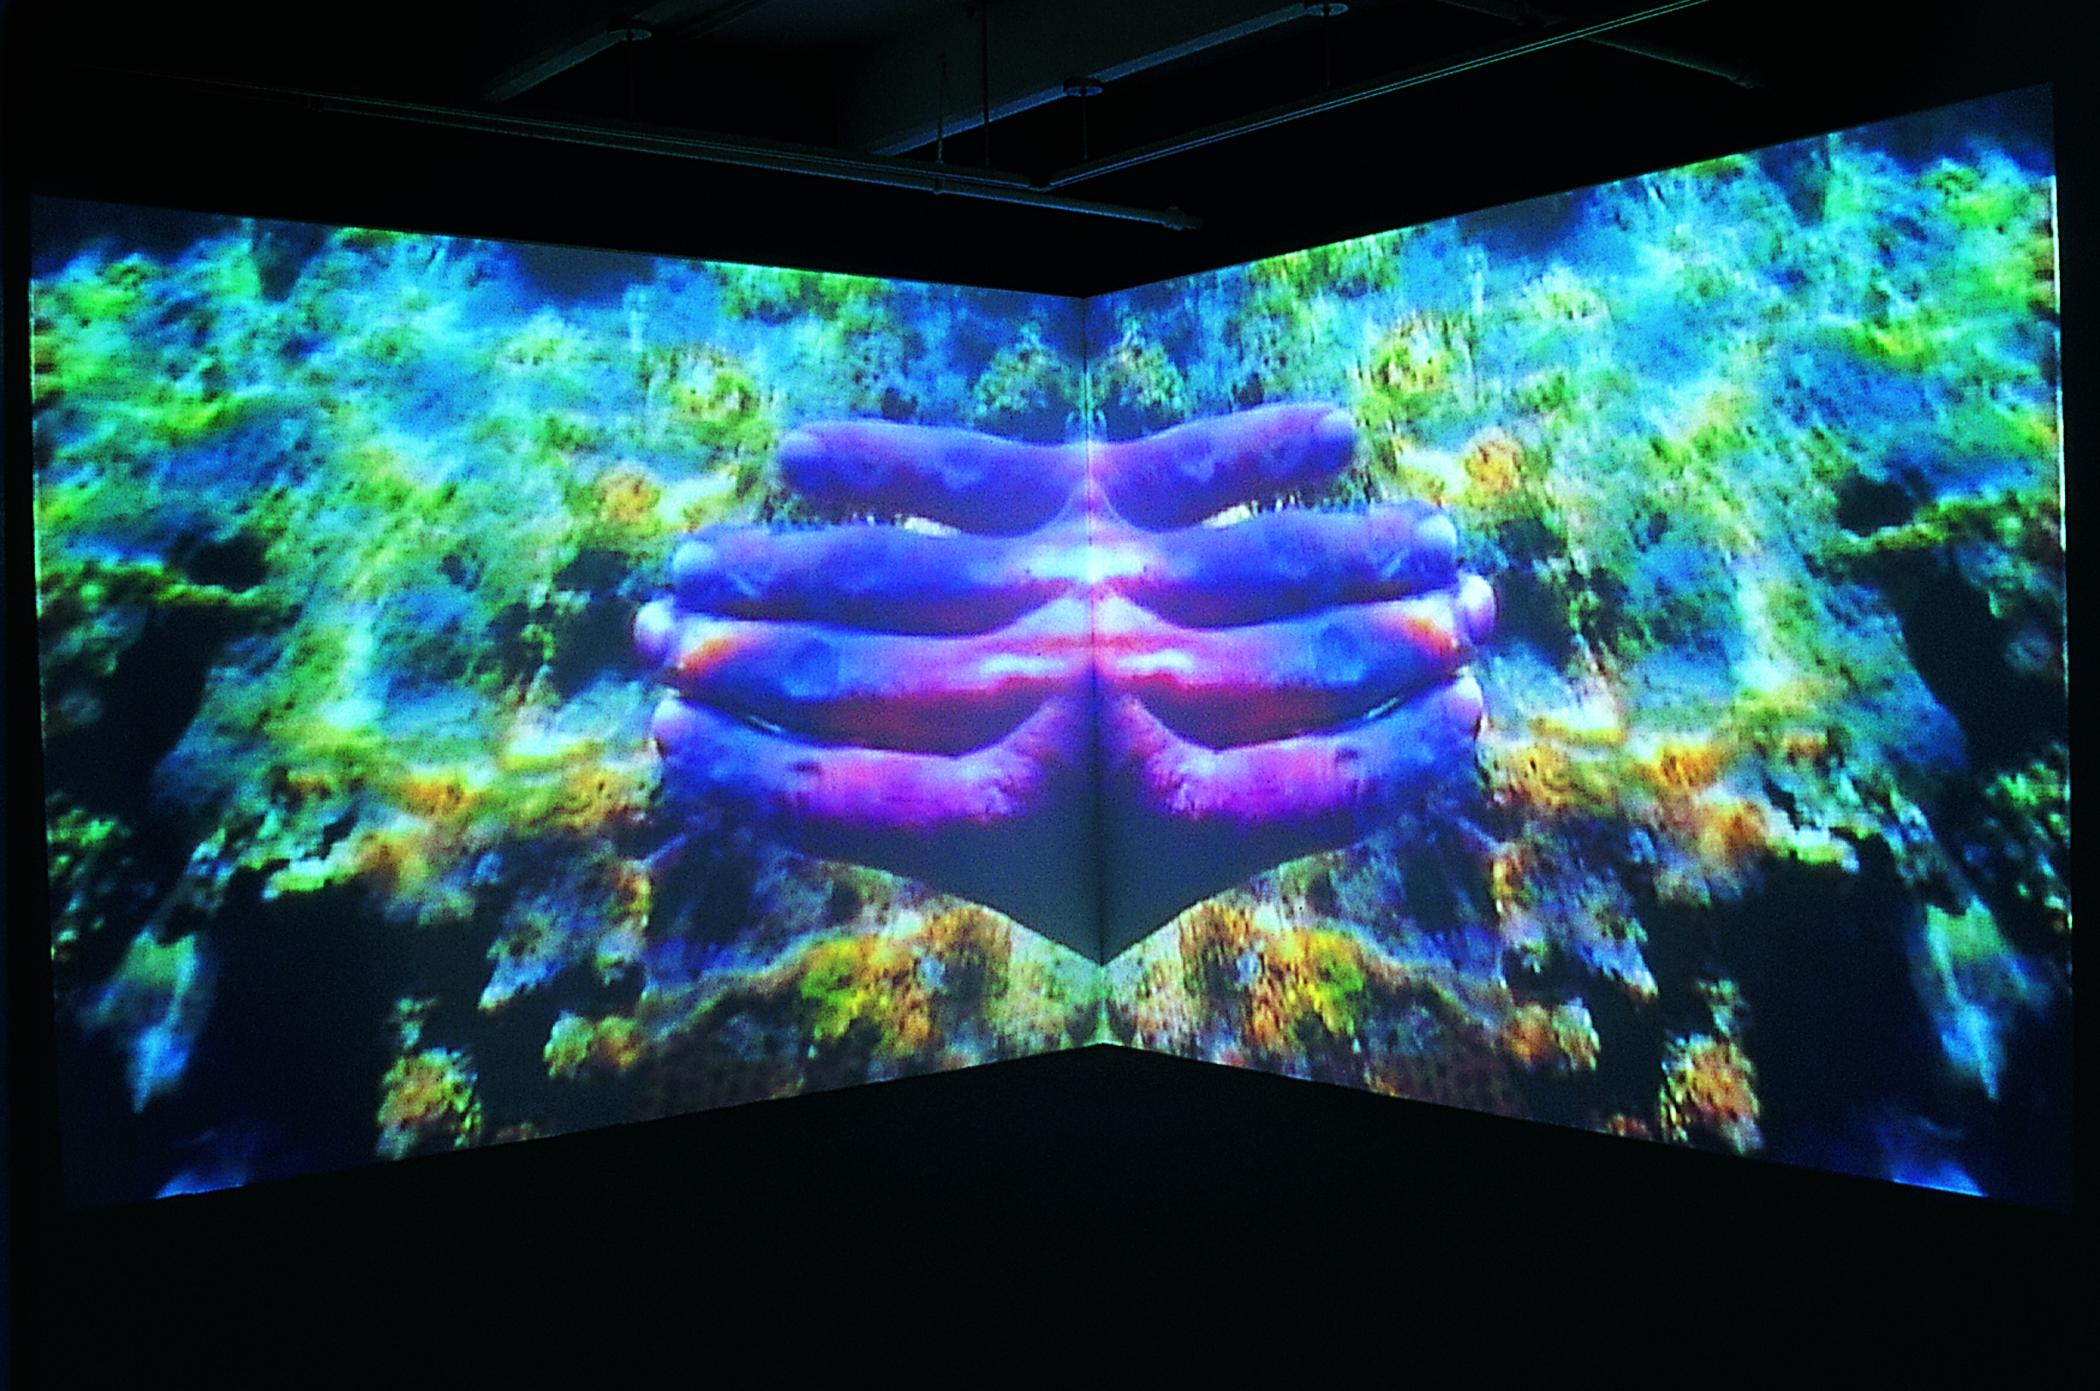 A screen shows a projected image of an underwater scene with fingers in the center. The image is mirrored along the vertical plane.